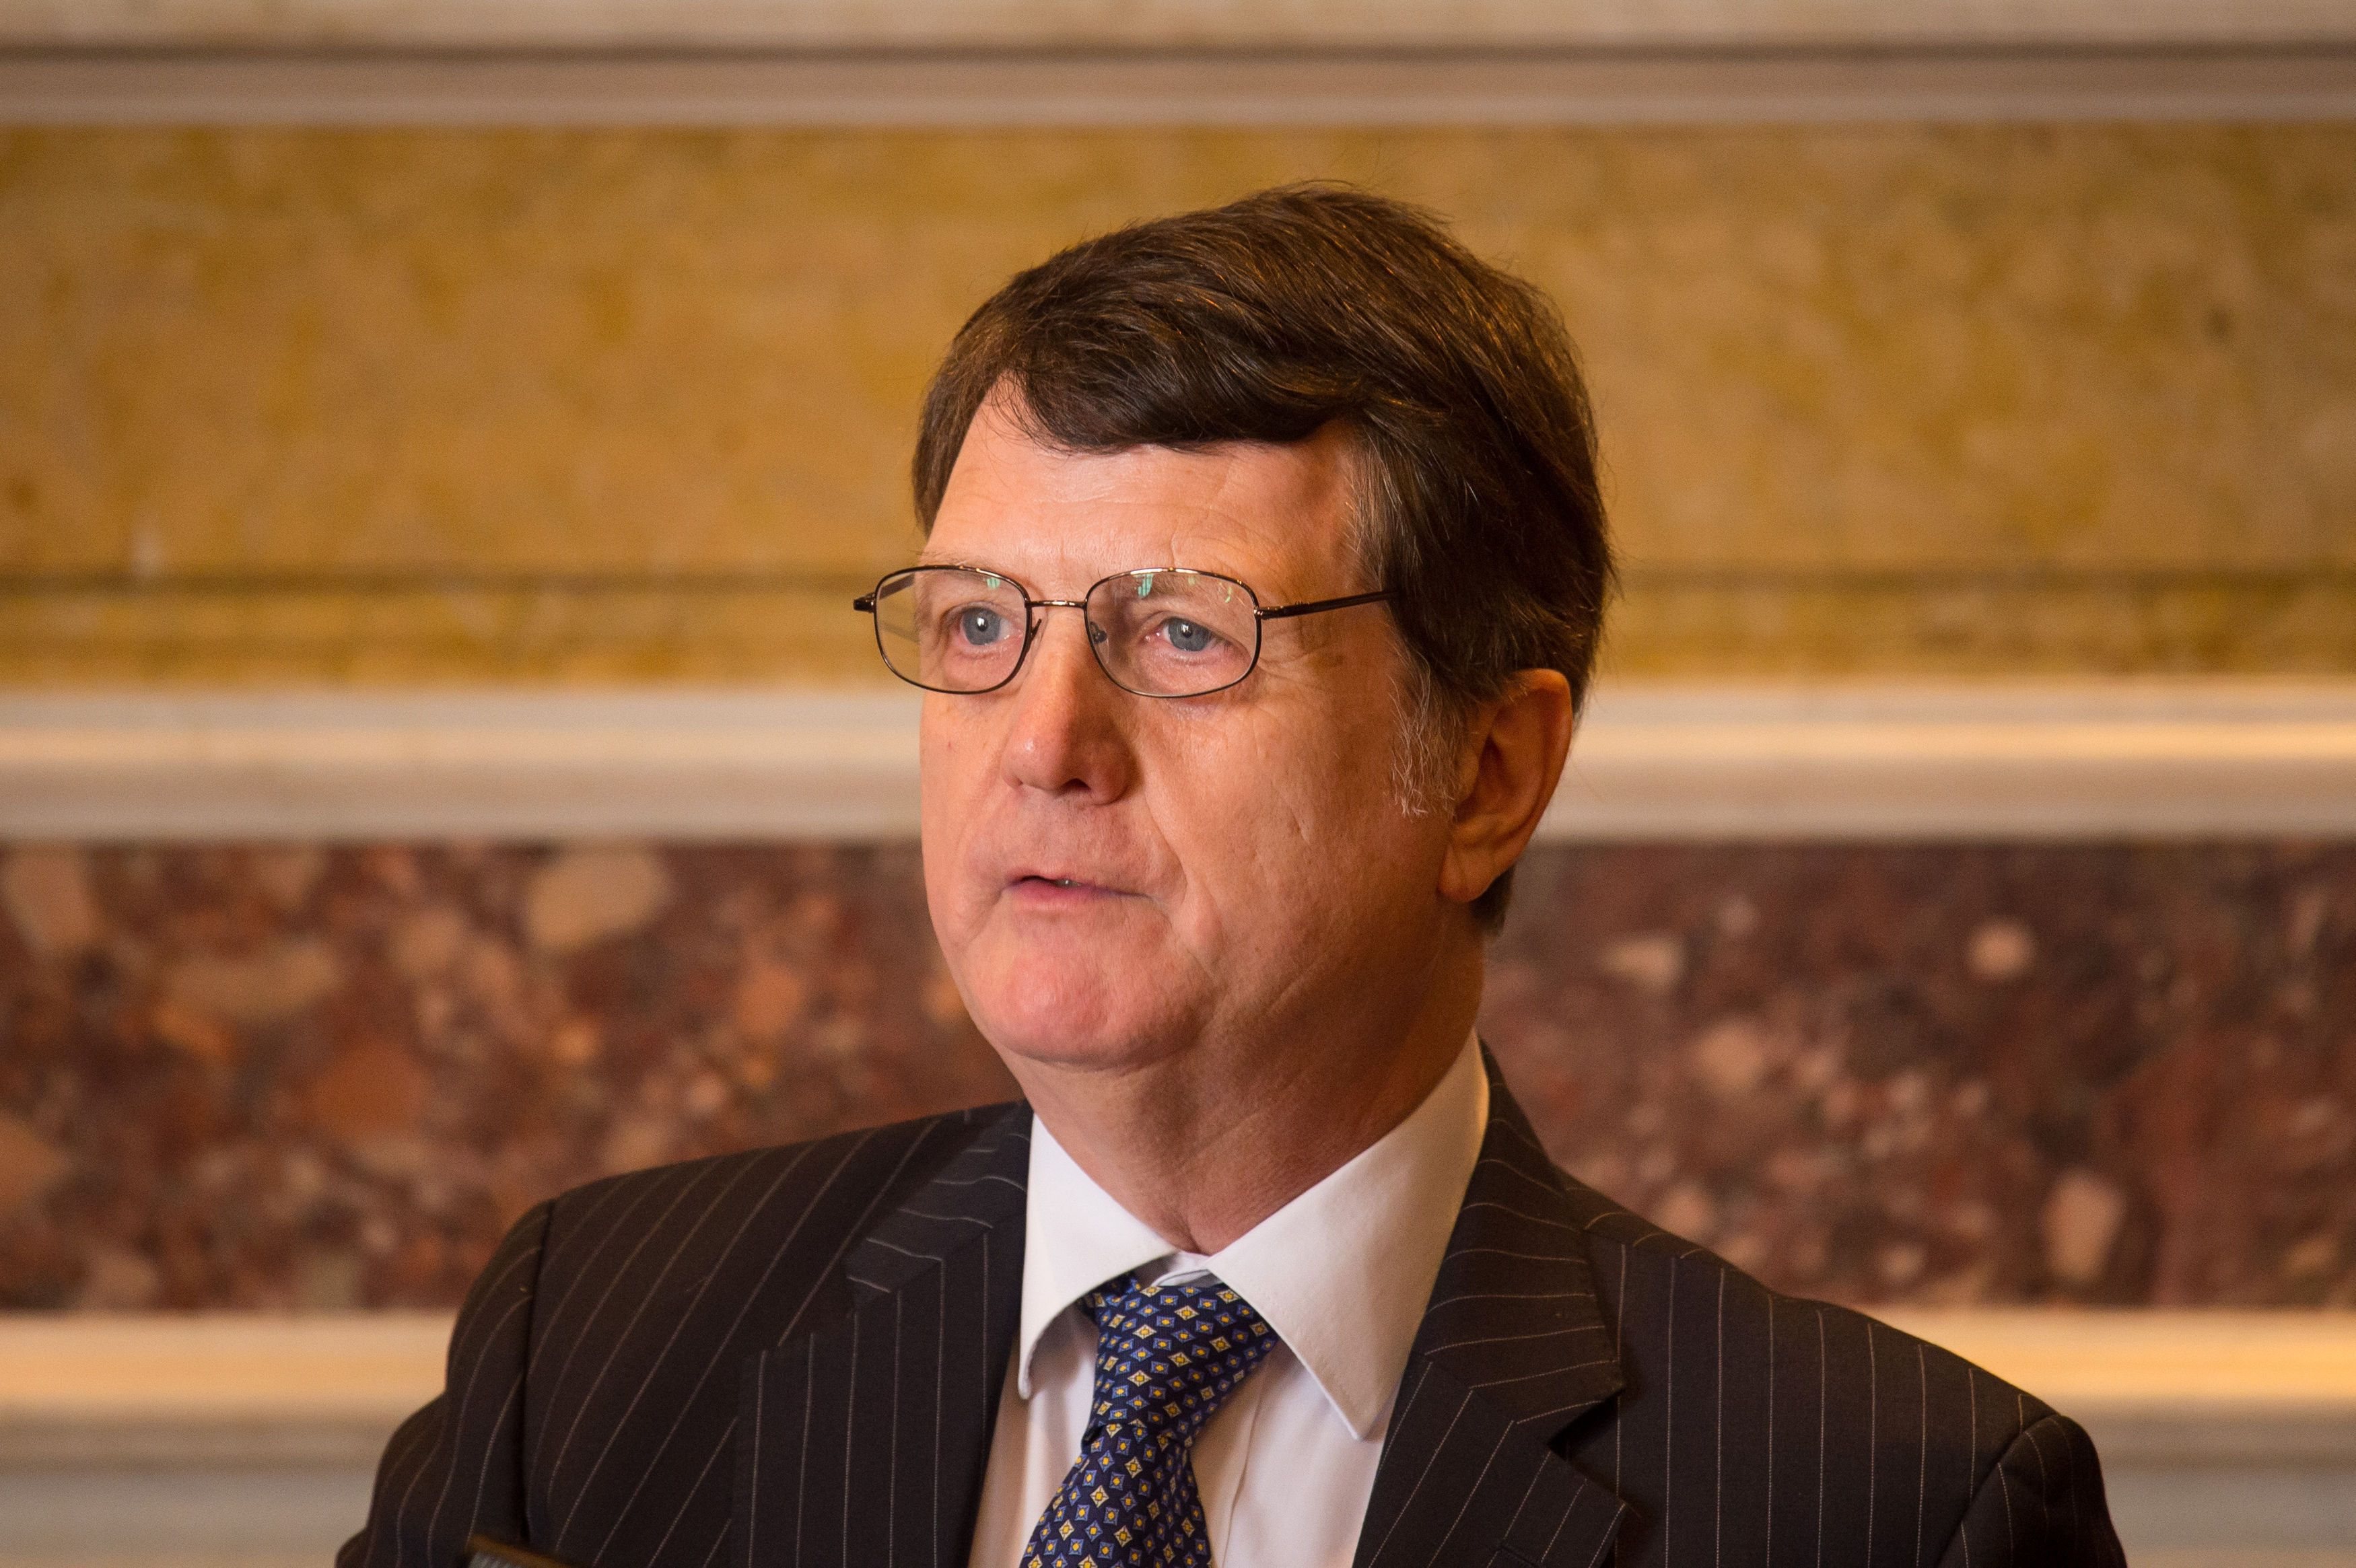 Gerard Batten was chosen as interim leader of the U.K. Independence Party on